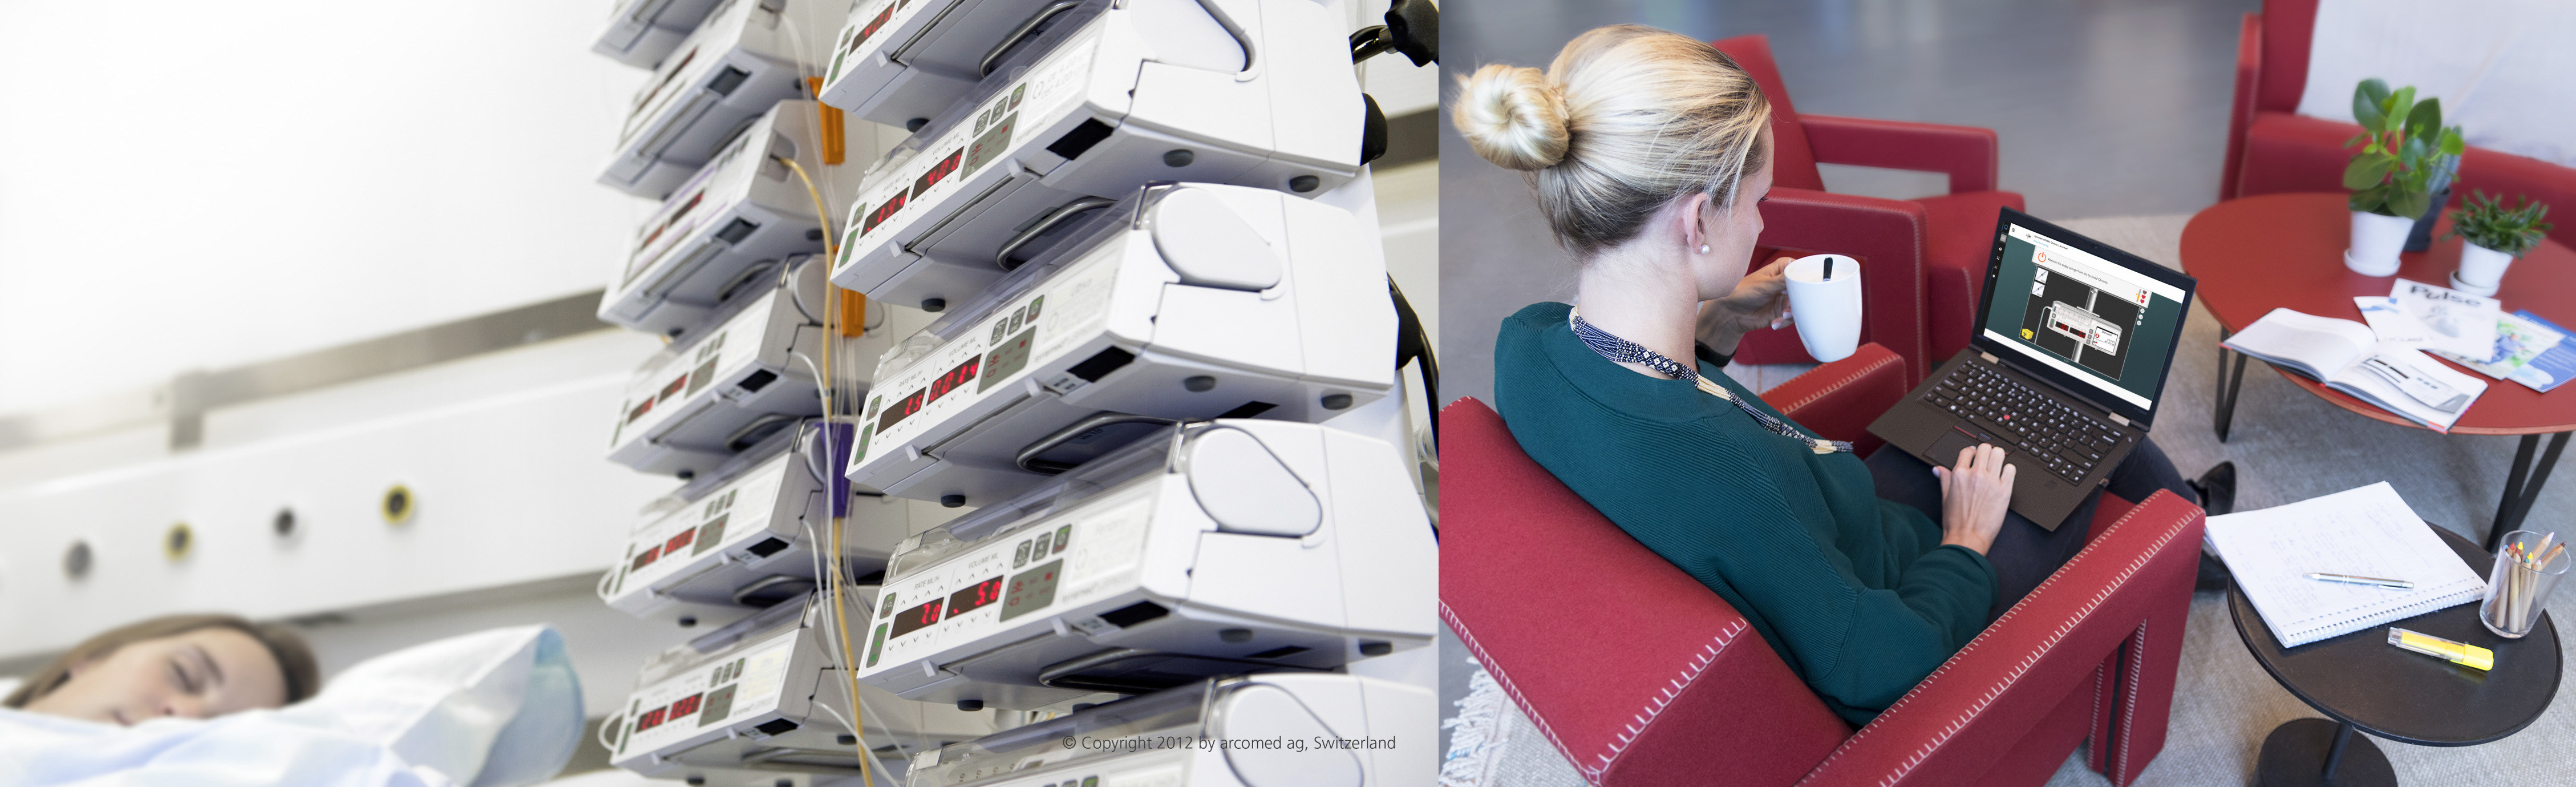 QRS and LeQuest - Long-term partners of the 'Noordwest' Hospital Group for infusion pumps and e-trainings